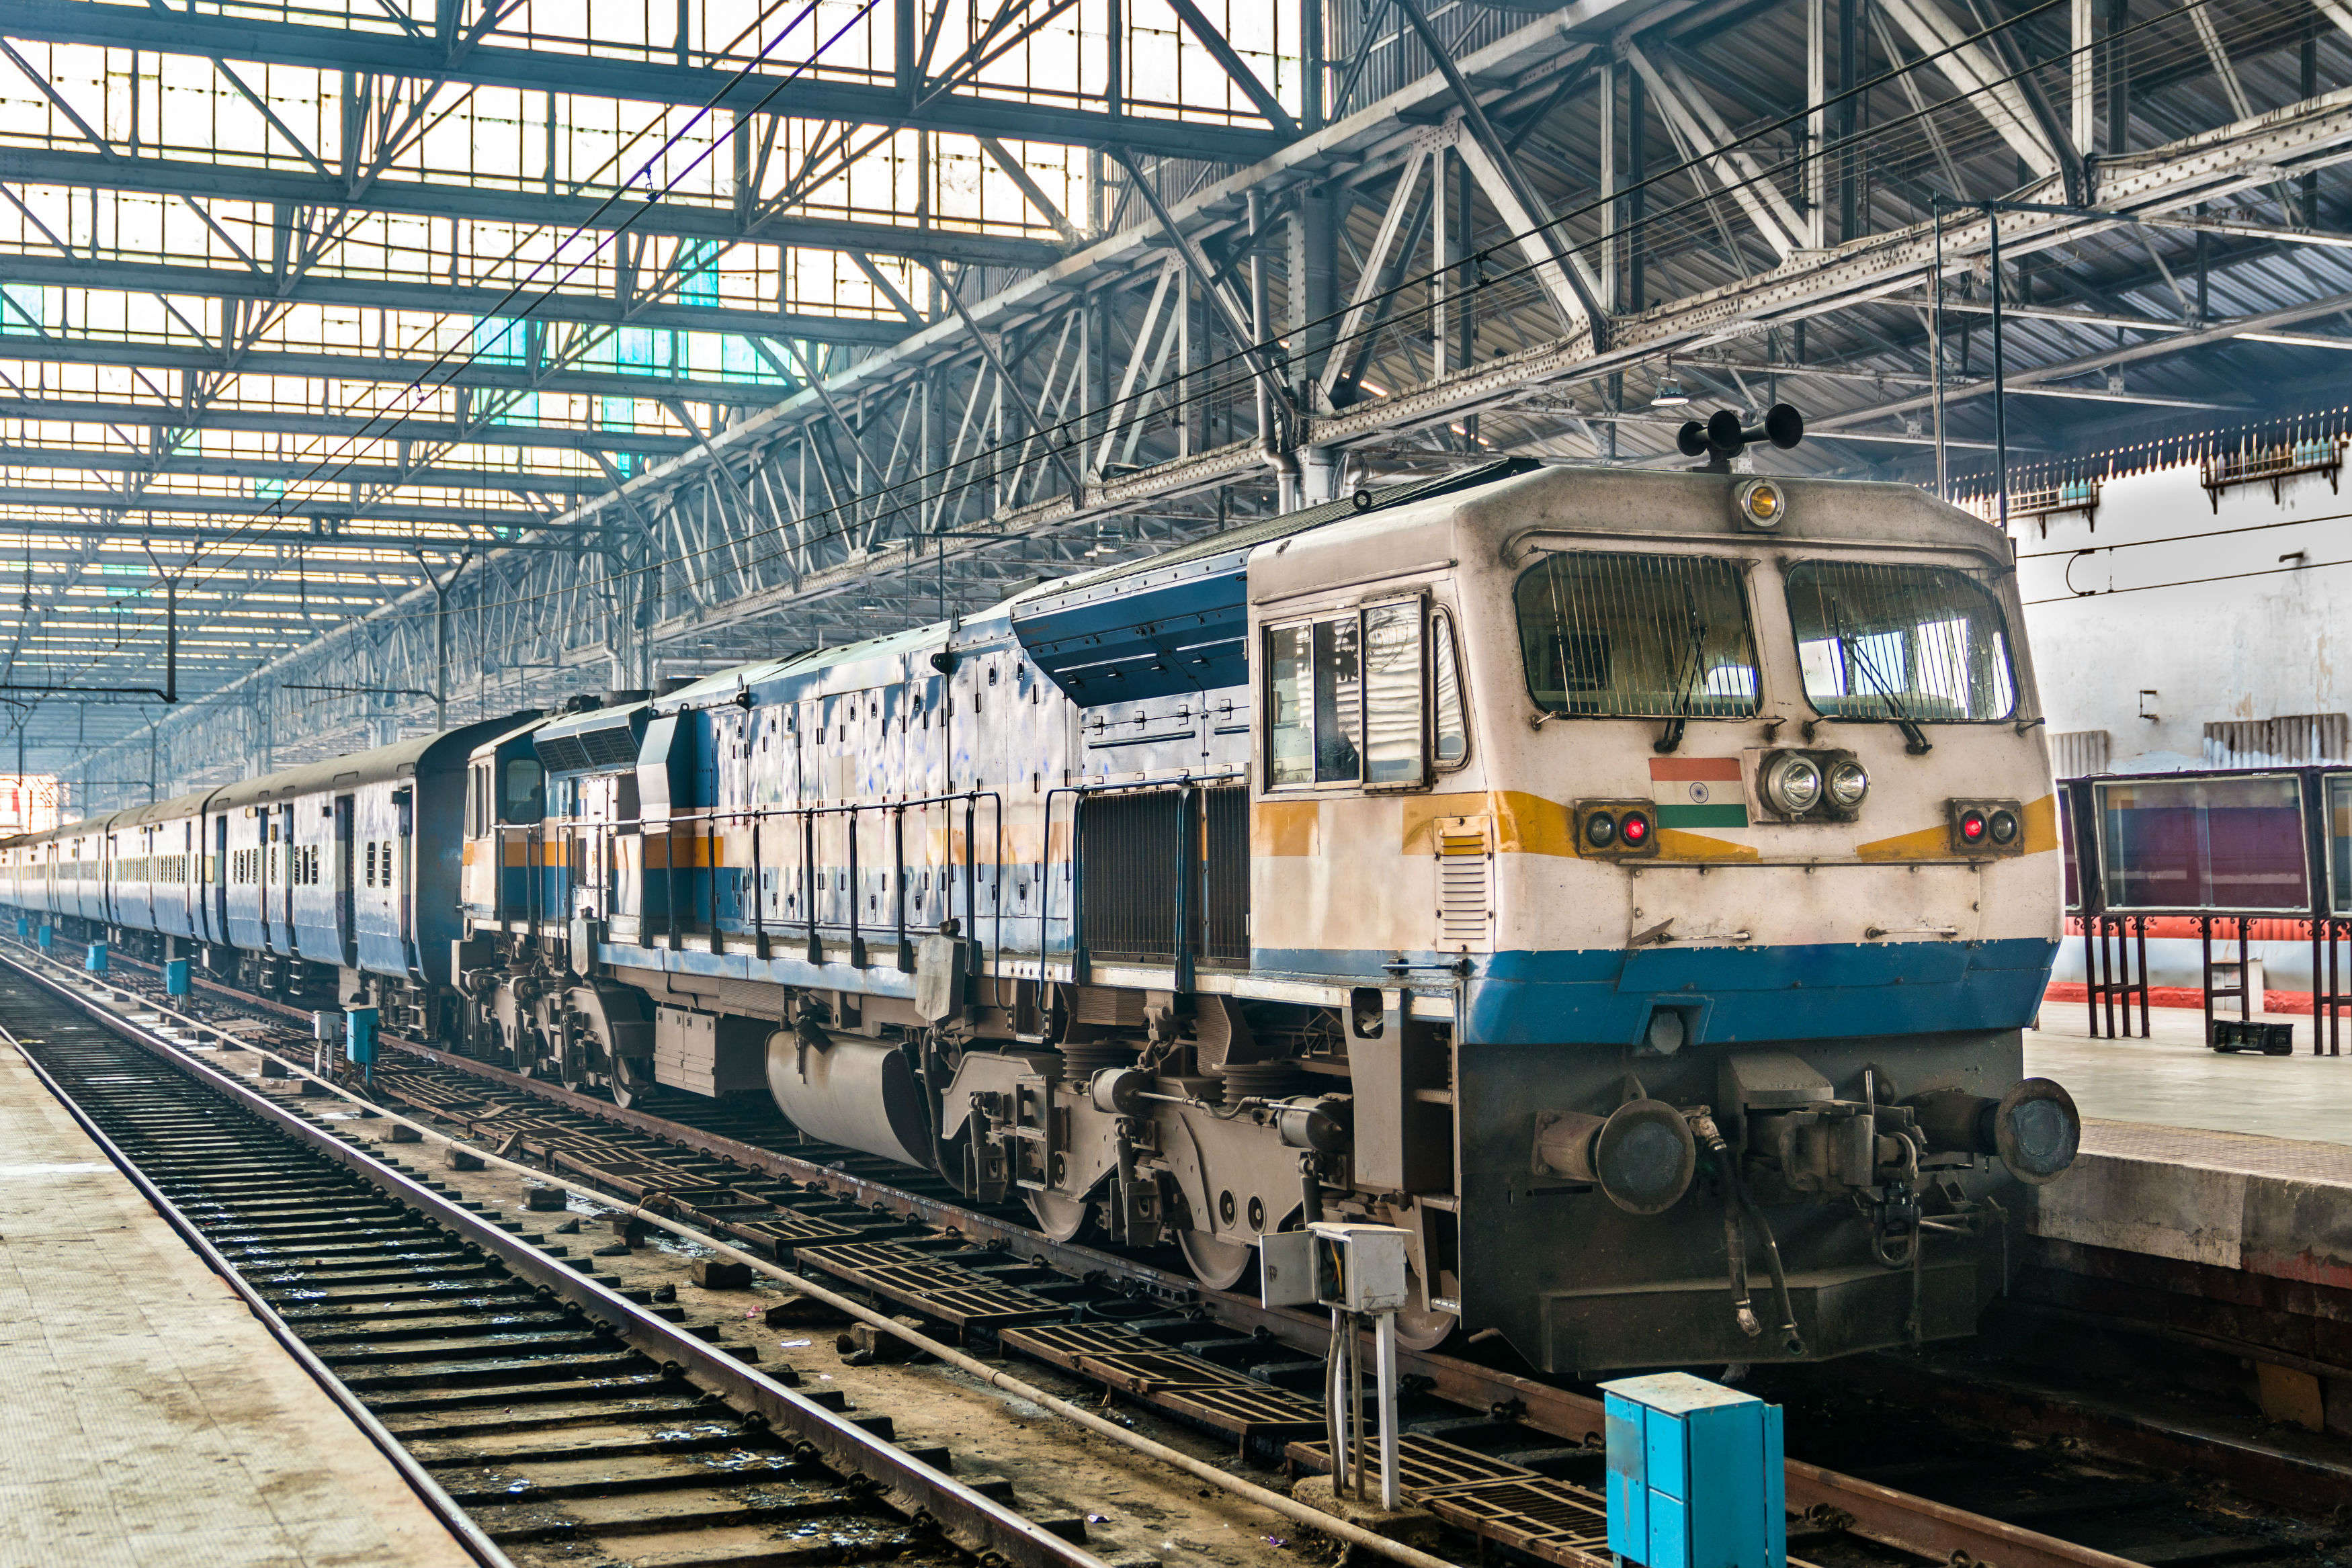 IRCTC has something called Premium Tatkal, read all about it here